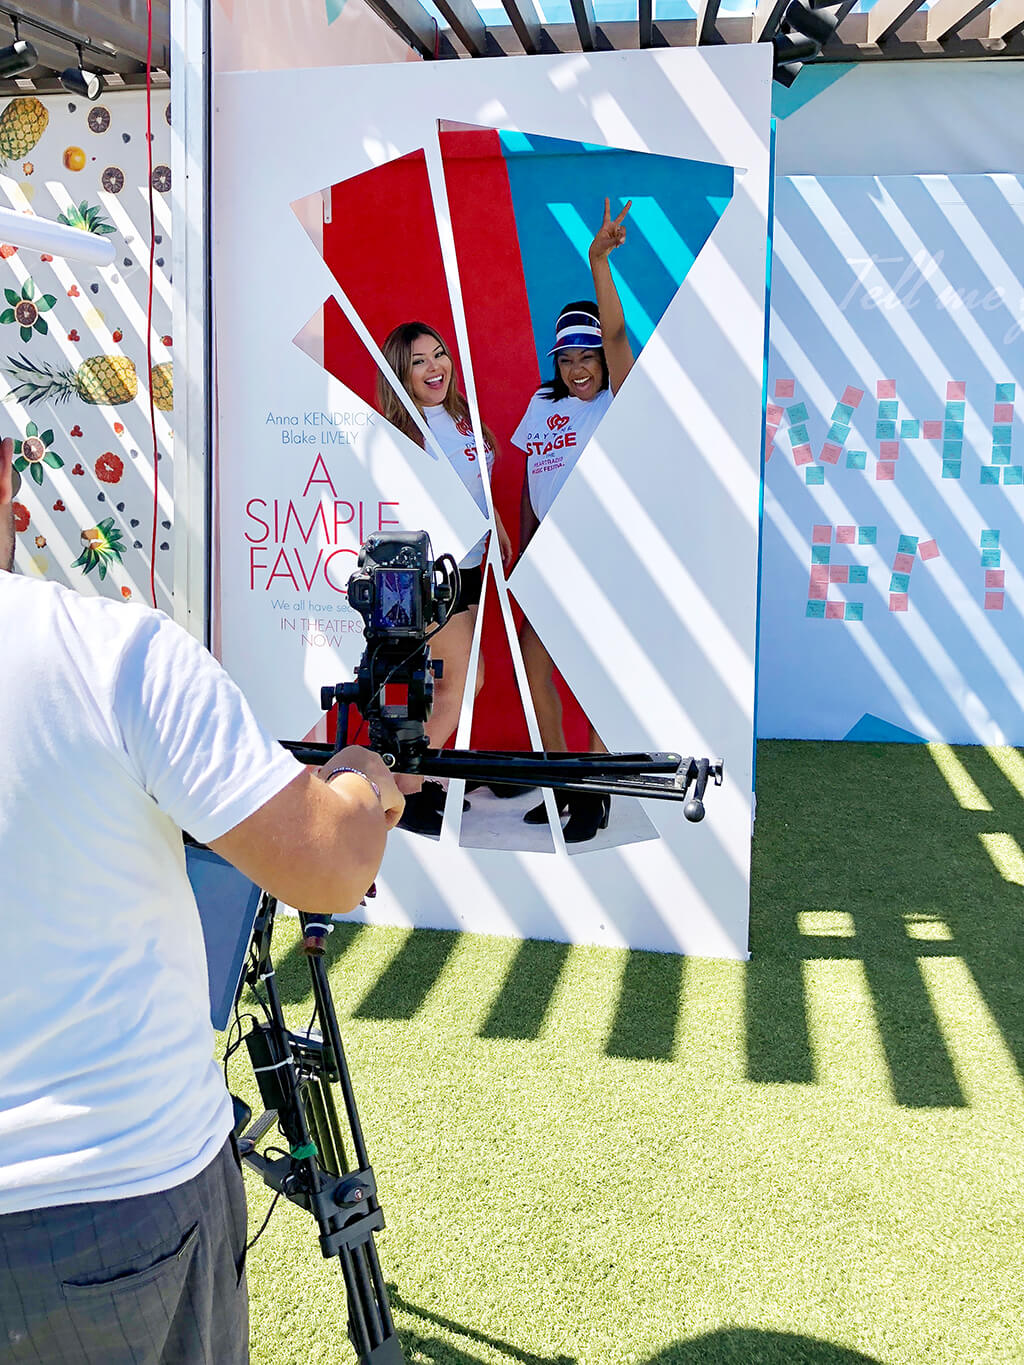 Two Women posing for a 3D Boomerang at the Simple Favor photo-op at the 2018 iHeart Radio Music Festival in Las Vegas